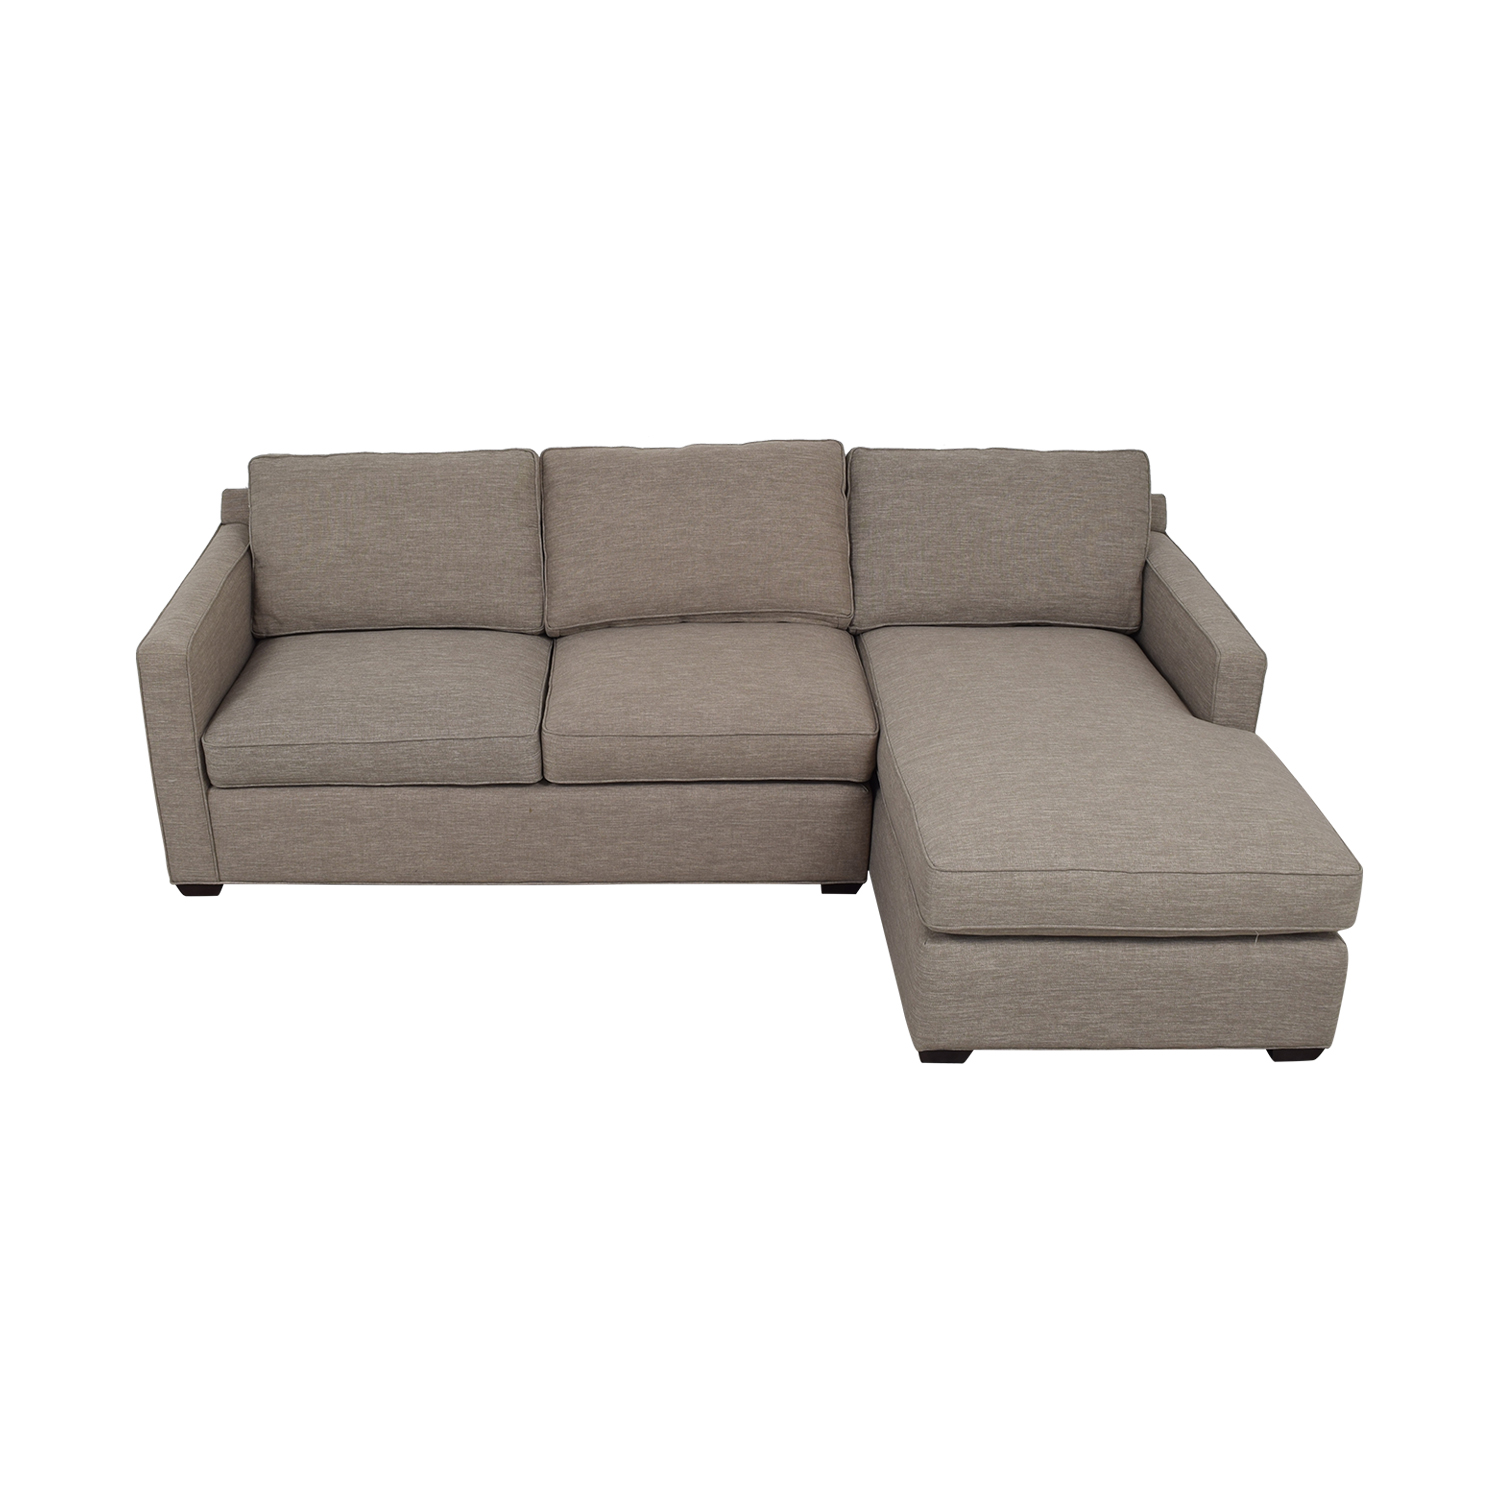 shop Crate & Barrel Grey Chaise Sectional Crate & Barrel